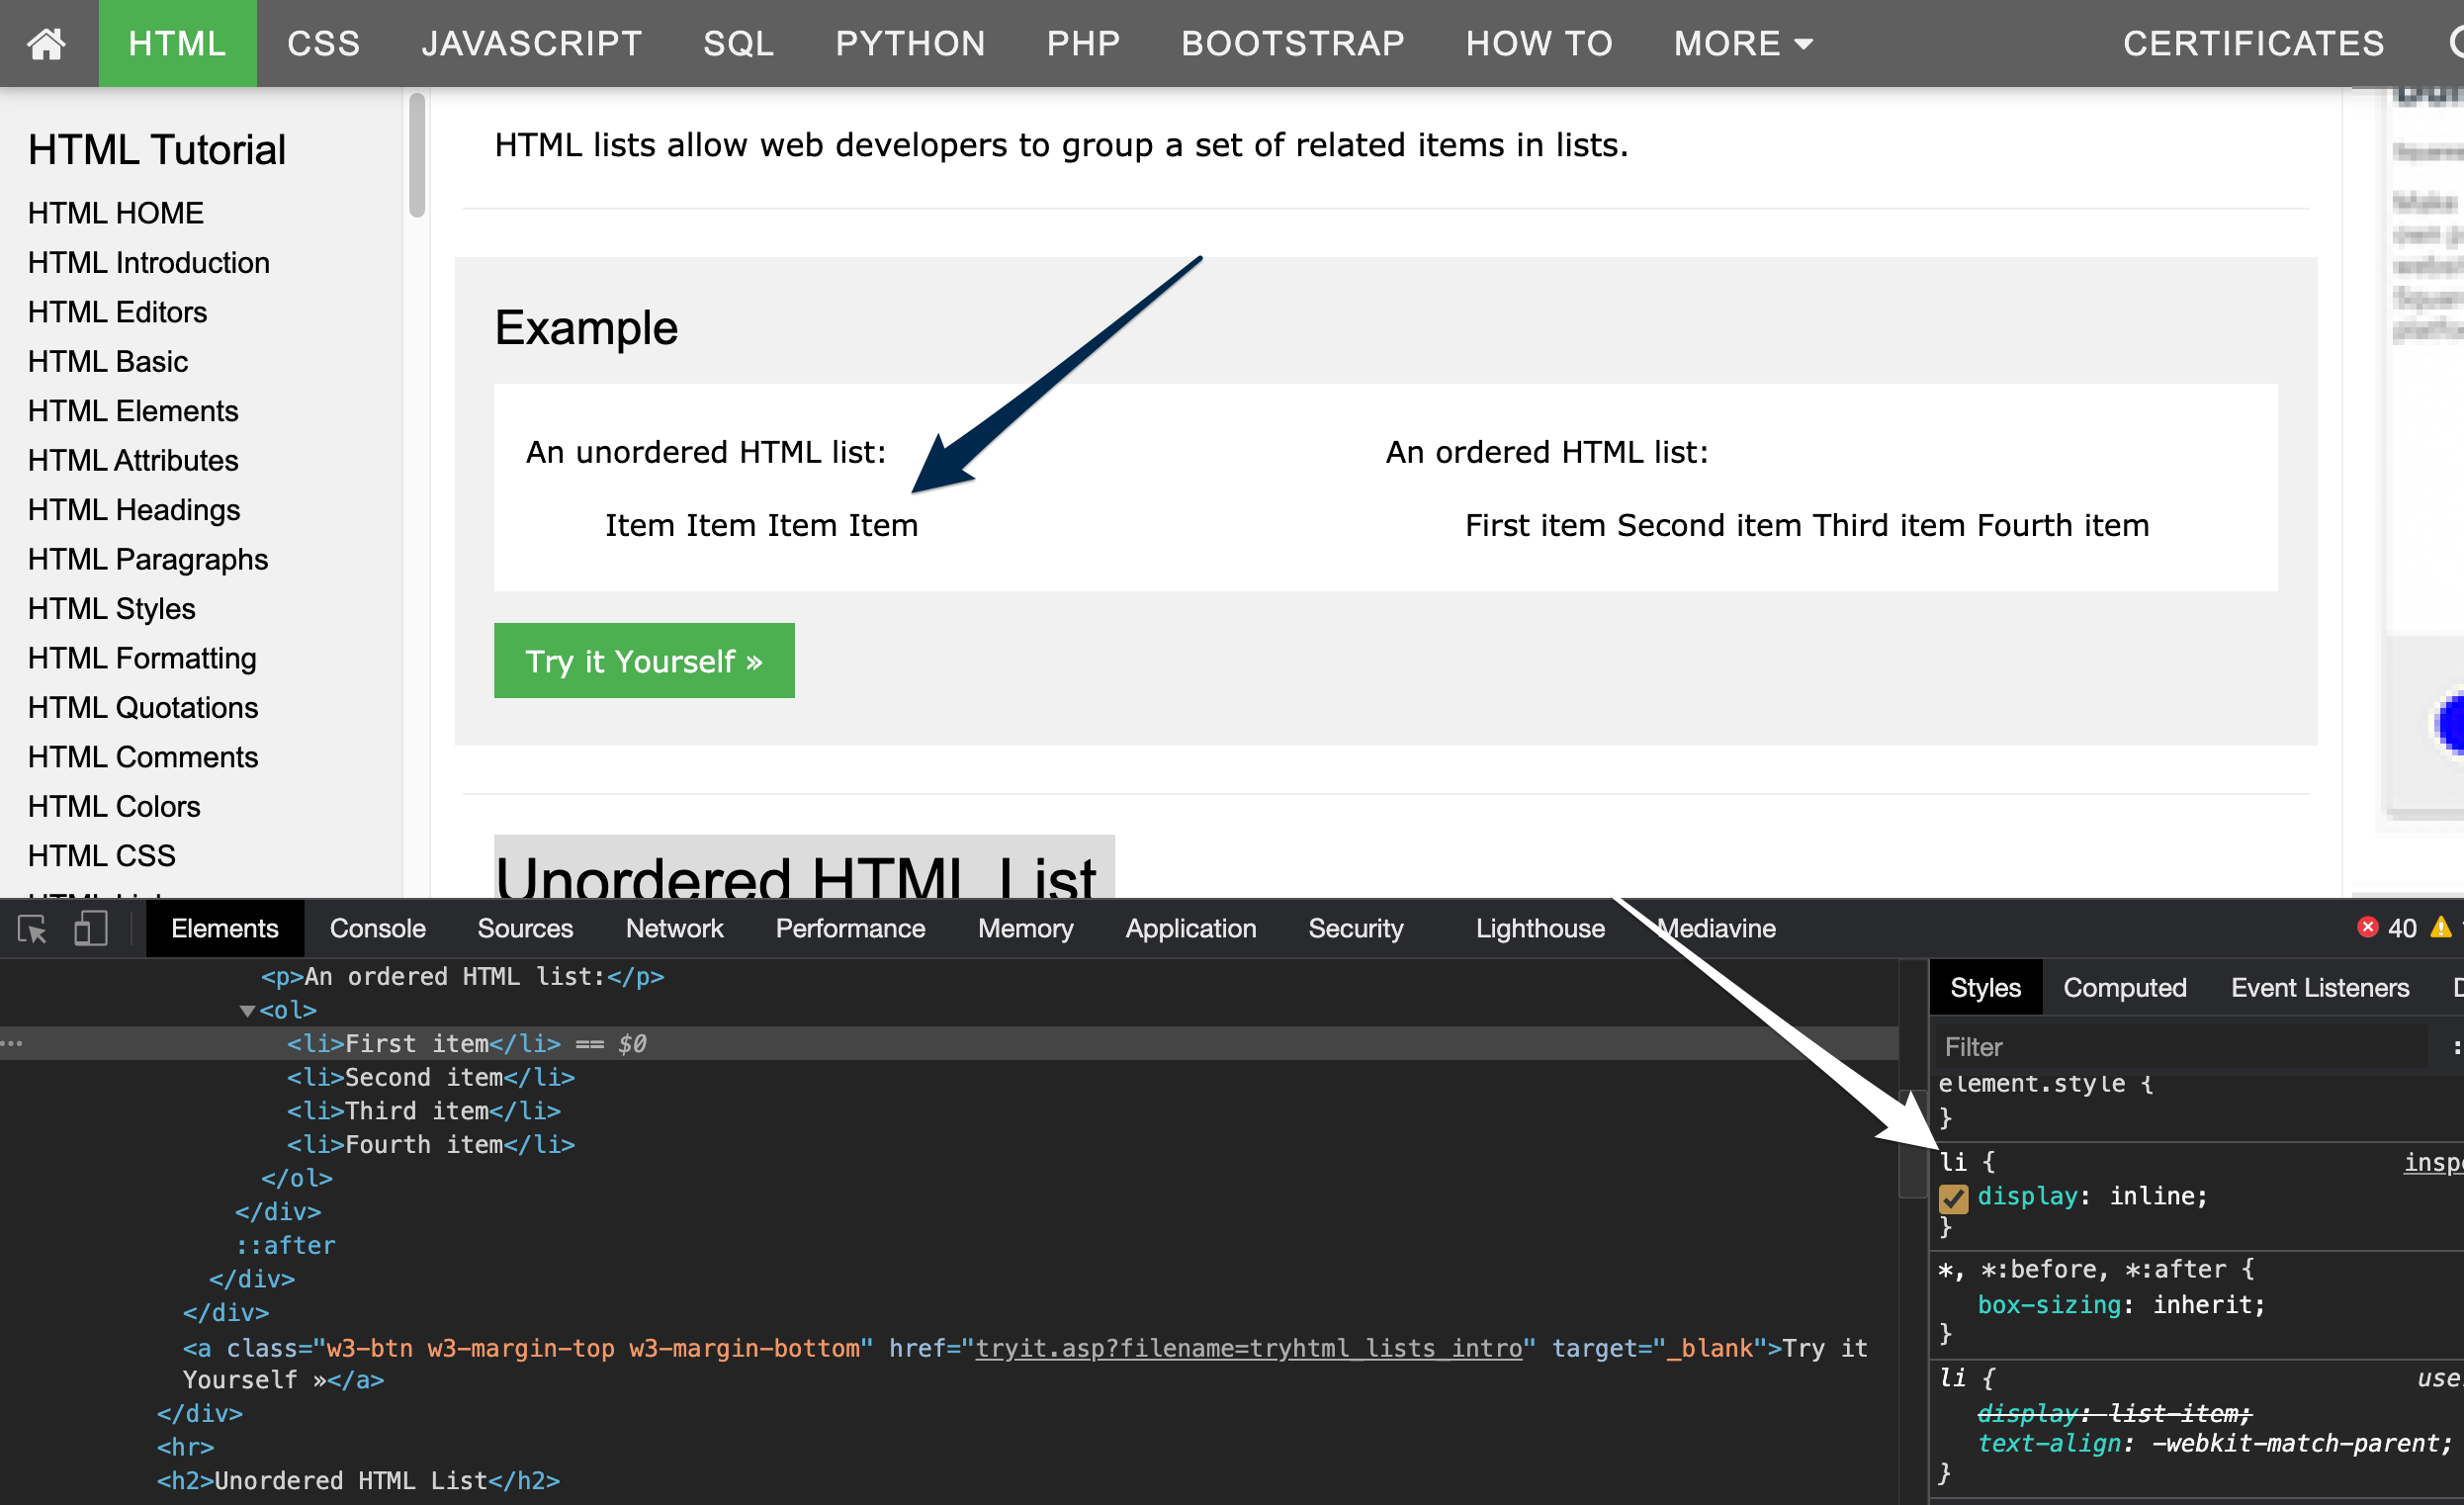 Image showing a style added in Dev Tools to list items that sets their disply property to 'display:inline'. The list items on the website are no longer numbered or have bullet points and instead of being vertical they are now listed side by side horizontally